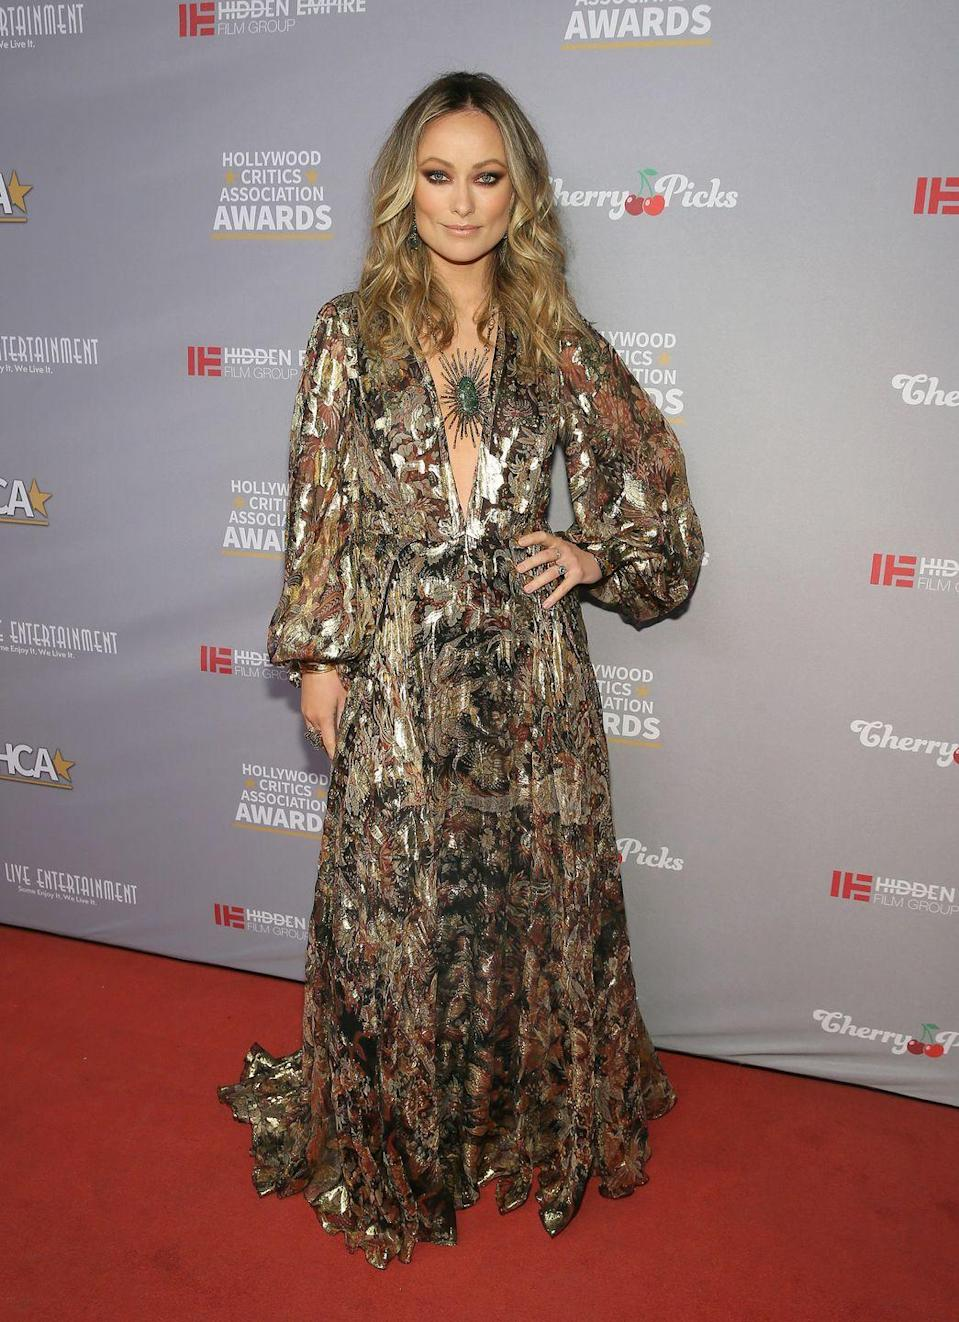 <p>A custom-made Etro gold dress, decorated with floral patterns, and a green stone fitted inside a gold starburst necklace was the perfect look for the wintery weather. <br></p>